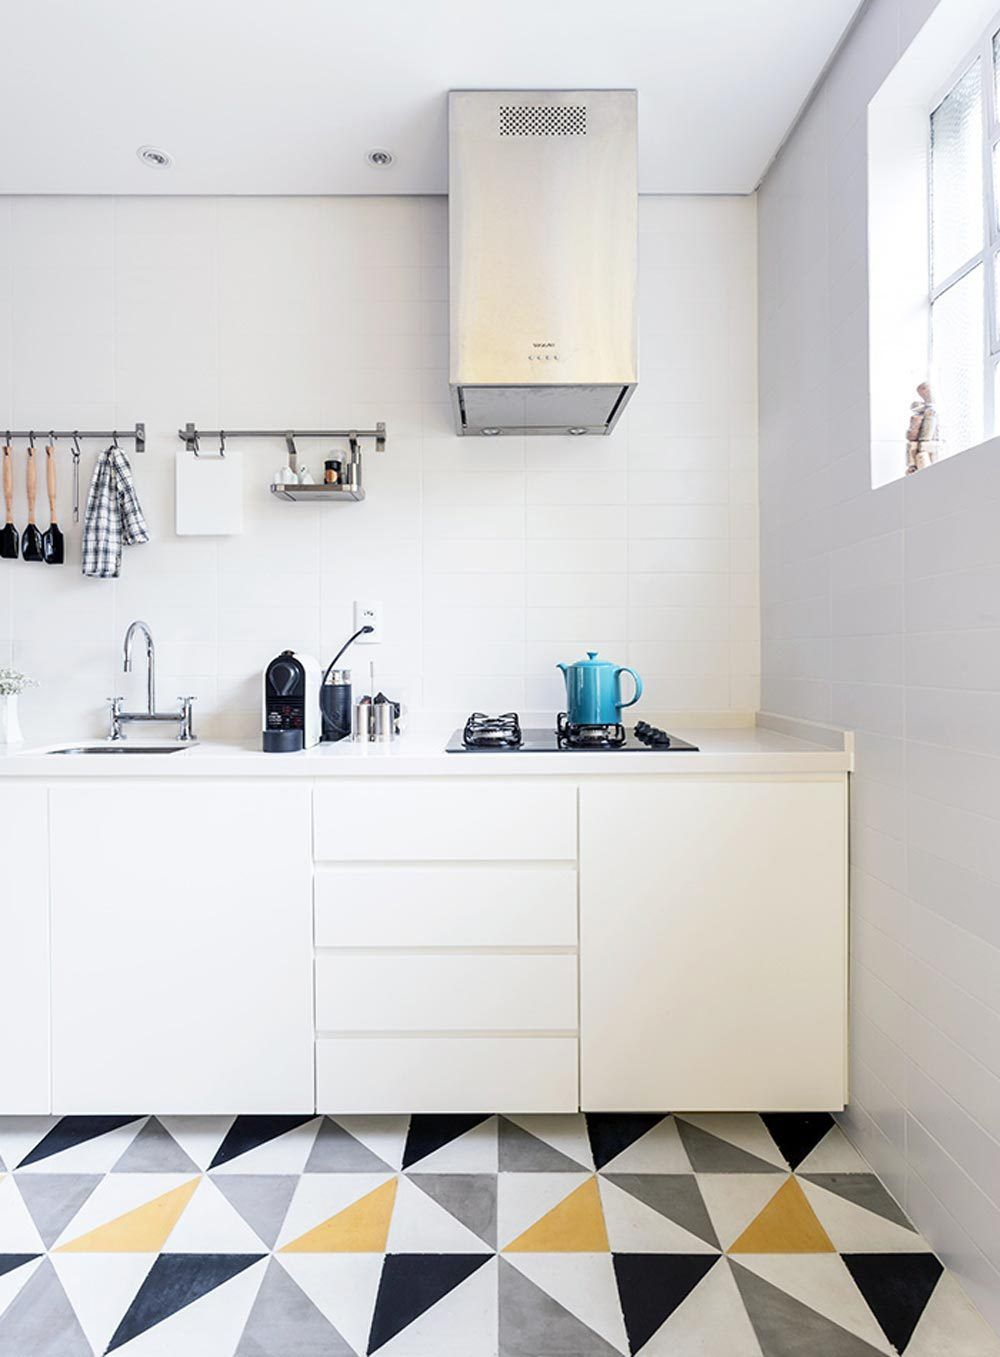 While we love a good, all-white kitchen as much as the next blog, there's something about a little unexpected bright color, an earthy texture, or some quirky accessorizing that stands out from the pack of conventionally beautiful designs. In the same carefree, adventurous spirit as the summer season, these 10 designs feature a warm, inviting cheer courtesy of their vibrant florals, dusty solids, rustic finishes, energizing accents, and even a vegetable metaphor or two. We can only imagine…